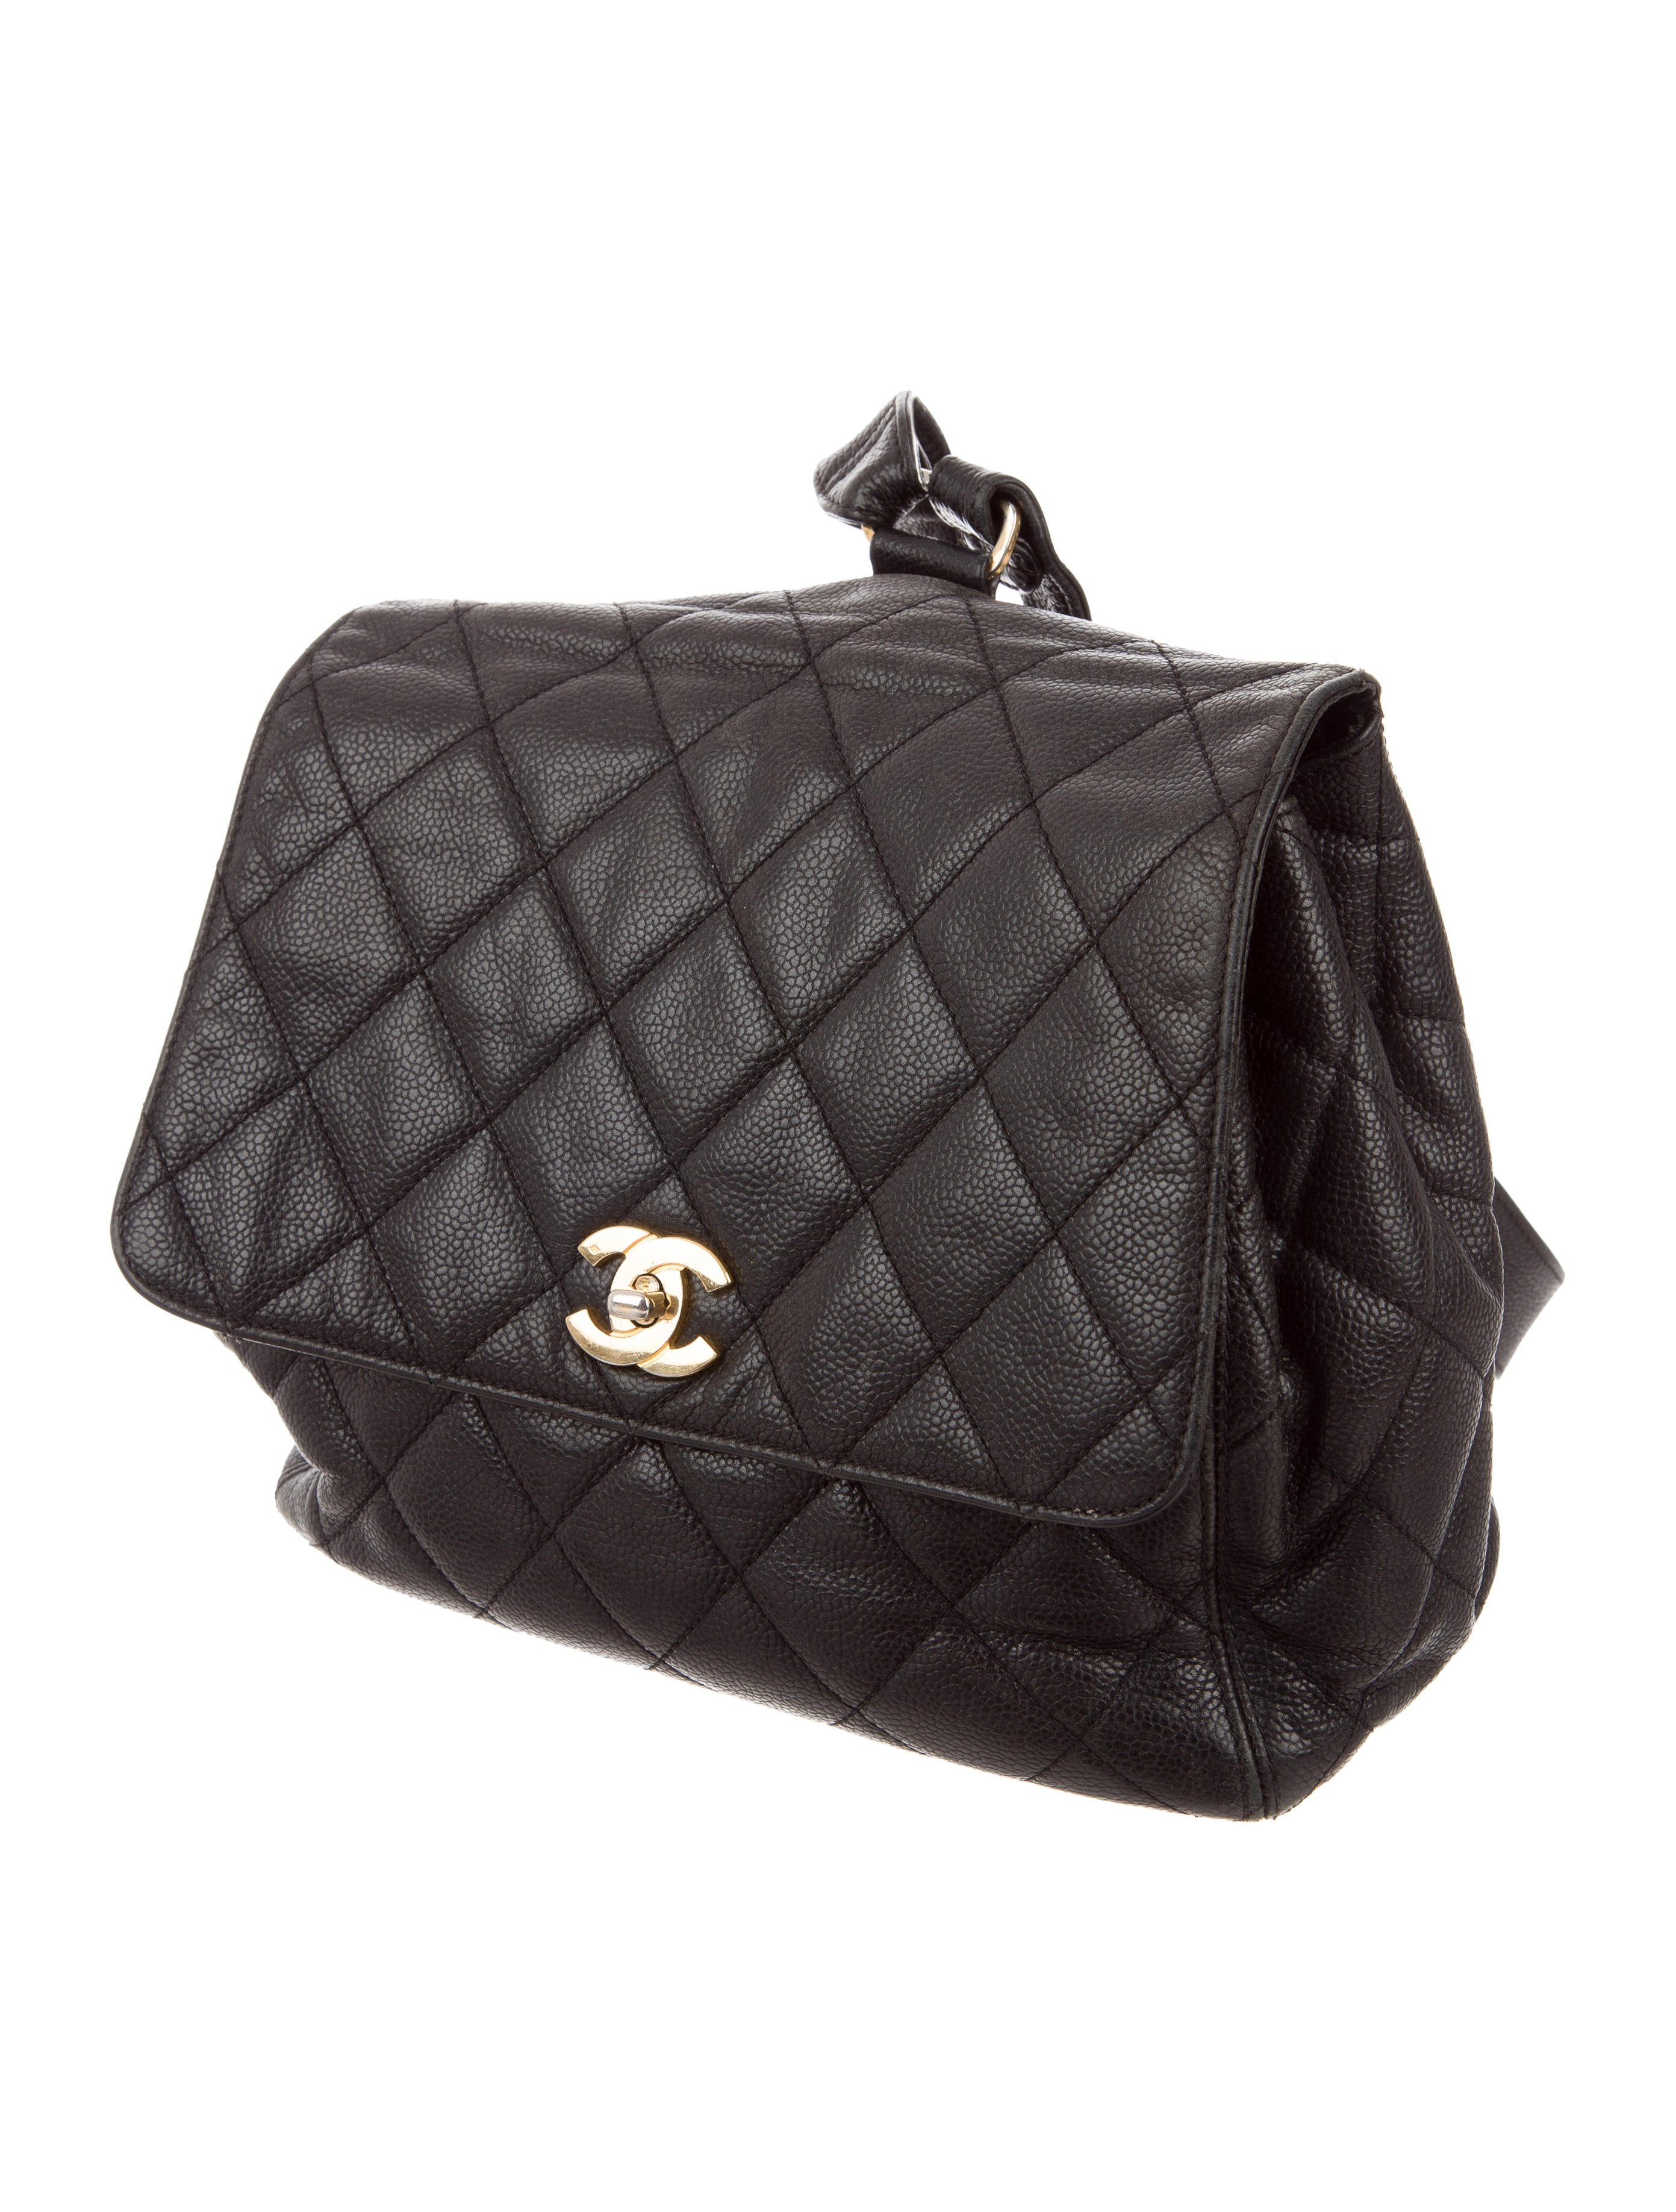 878d0471ec4f Chanel Vintage Leather Quilted Backpack- Fenix Toulouse Handball